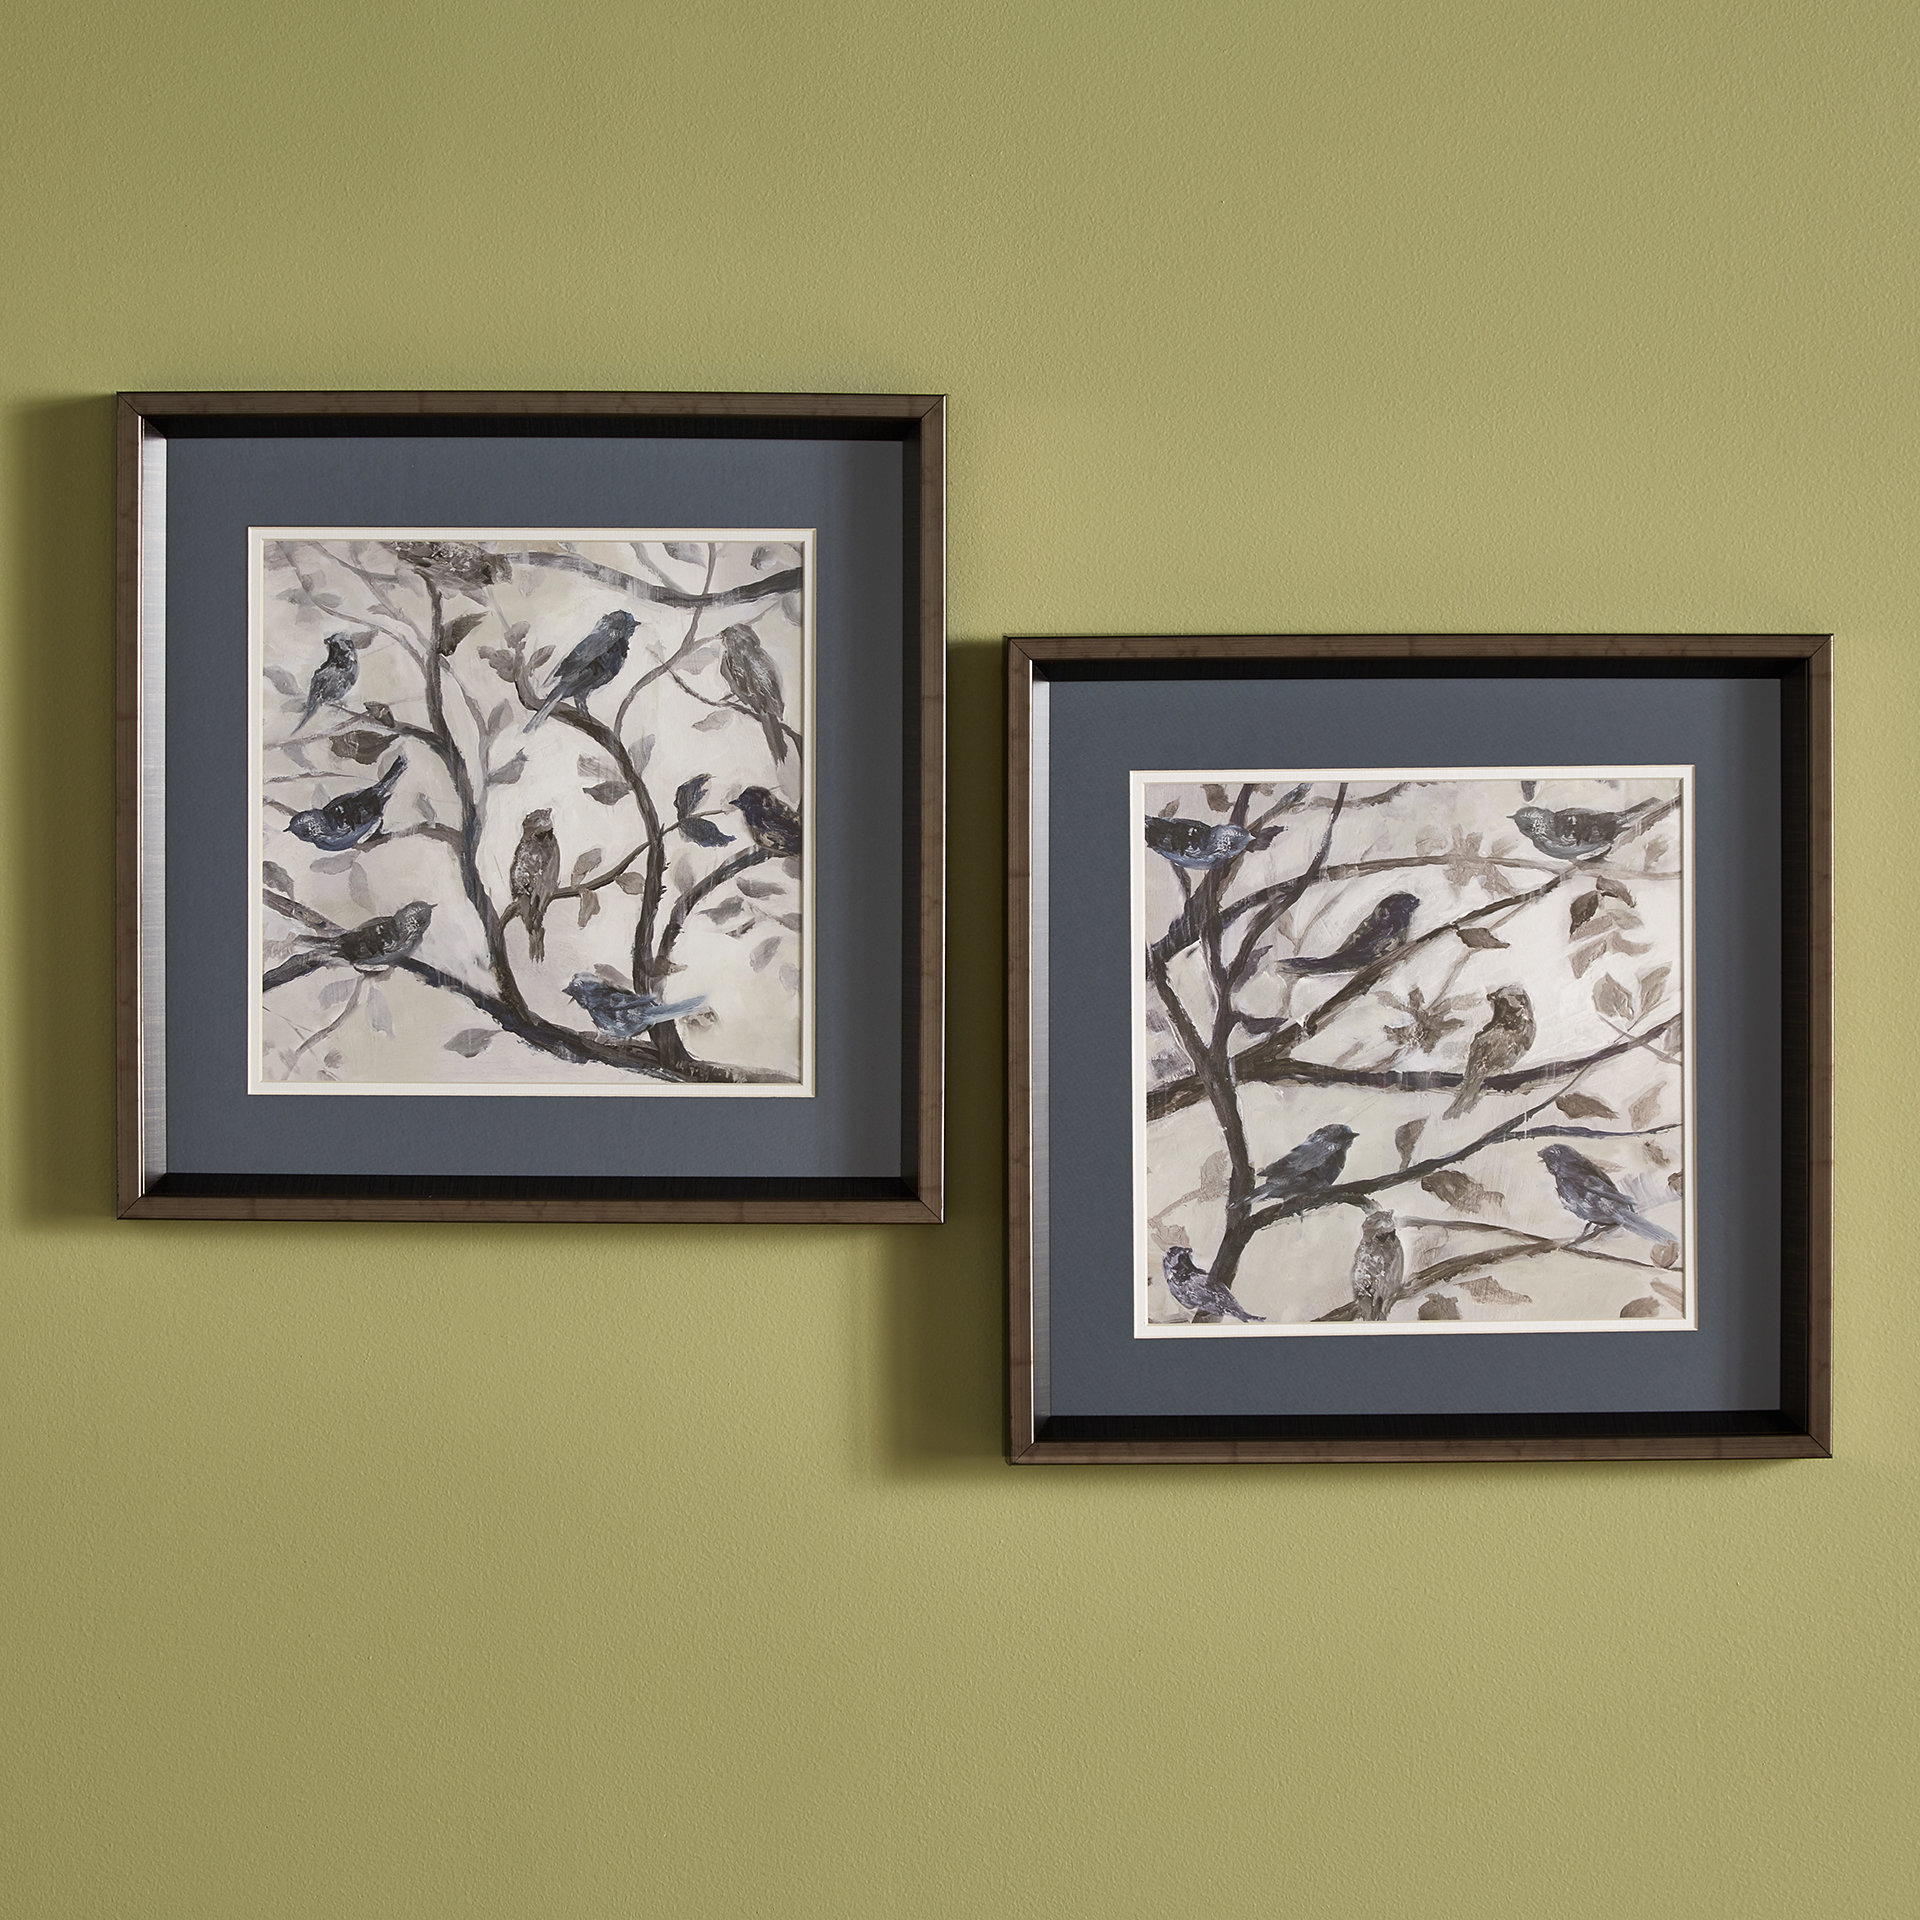 Farmhouse & Rustic Charlton Home Wall Art | Birch Lane within Metal Wall Decor By Charlton Home (Image 15 of 30)